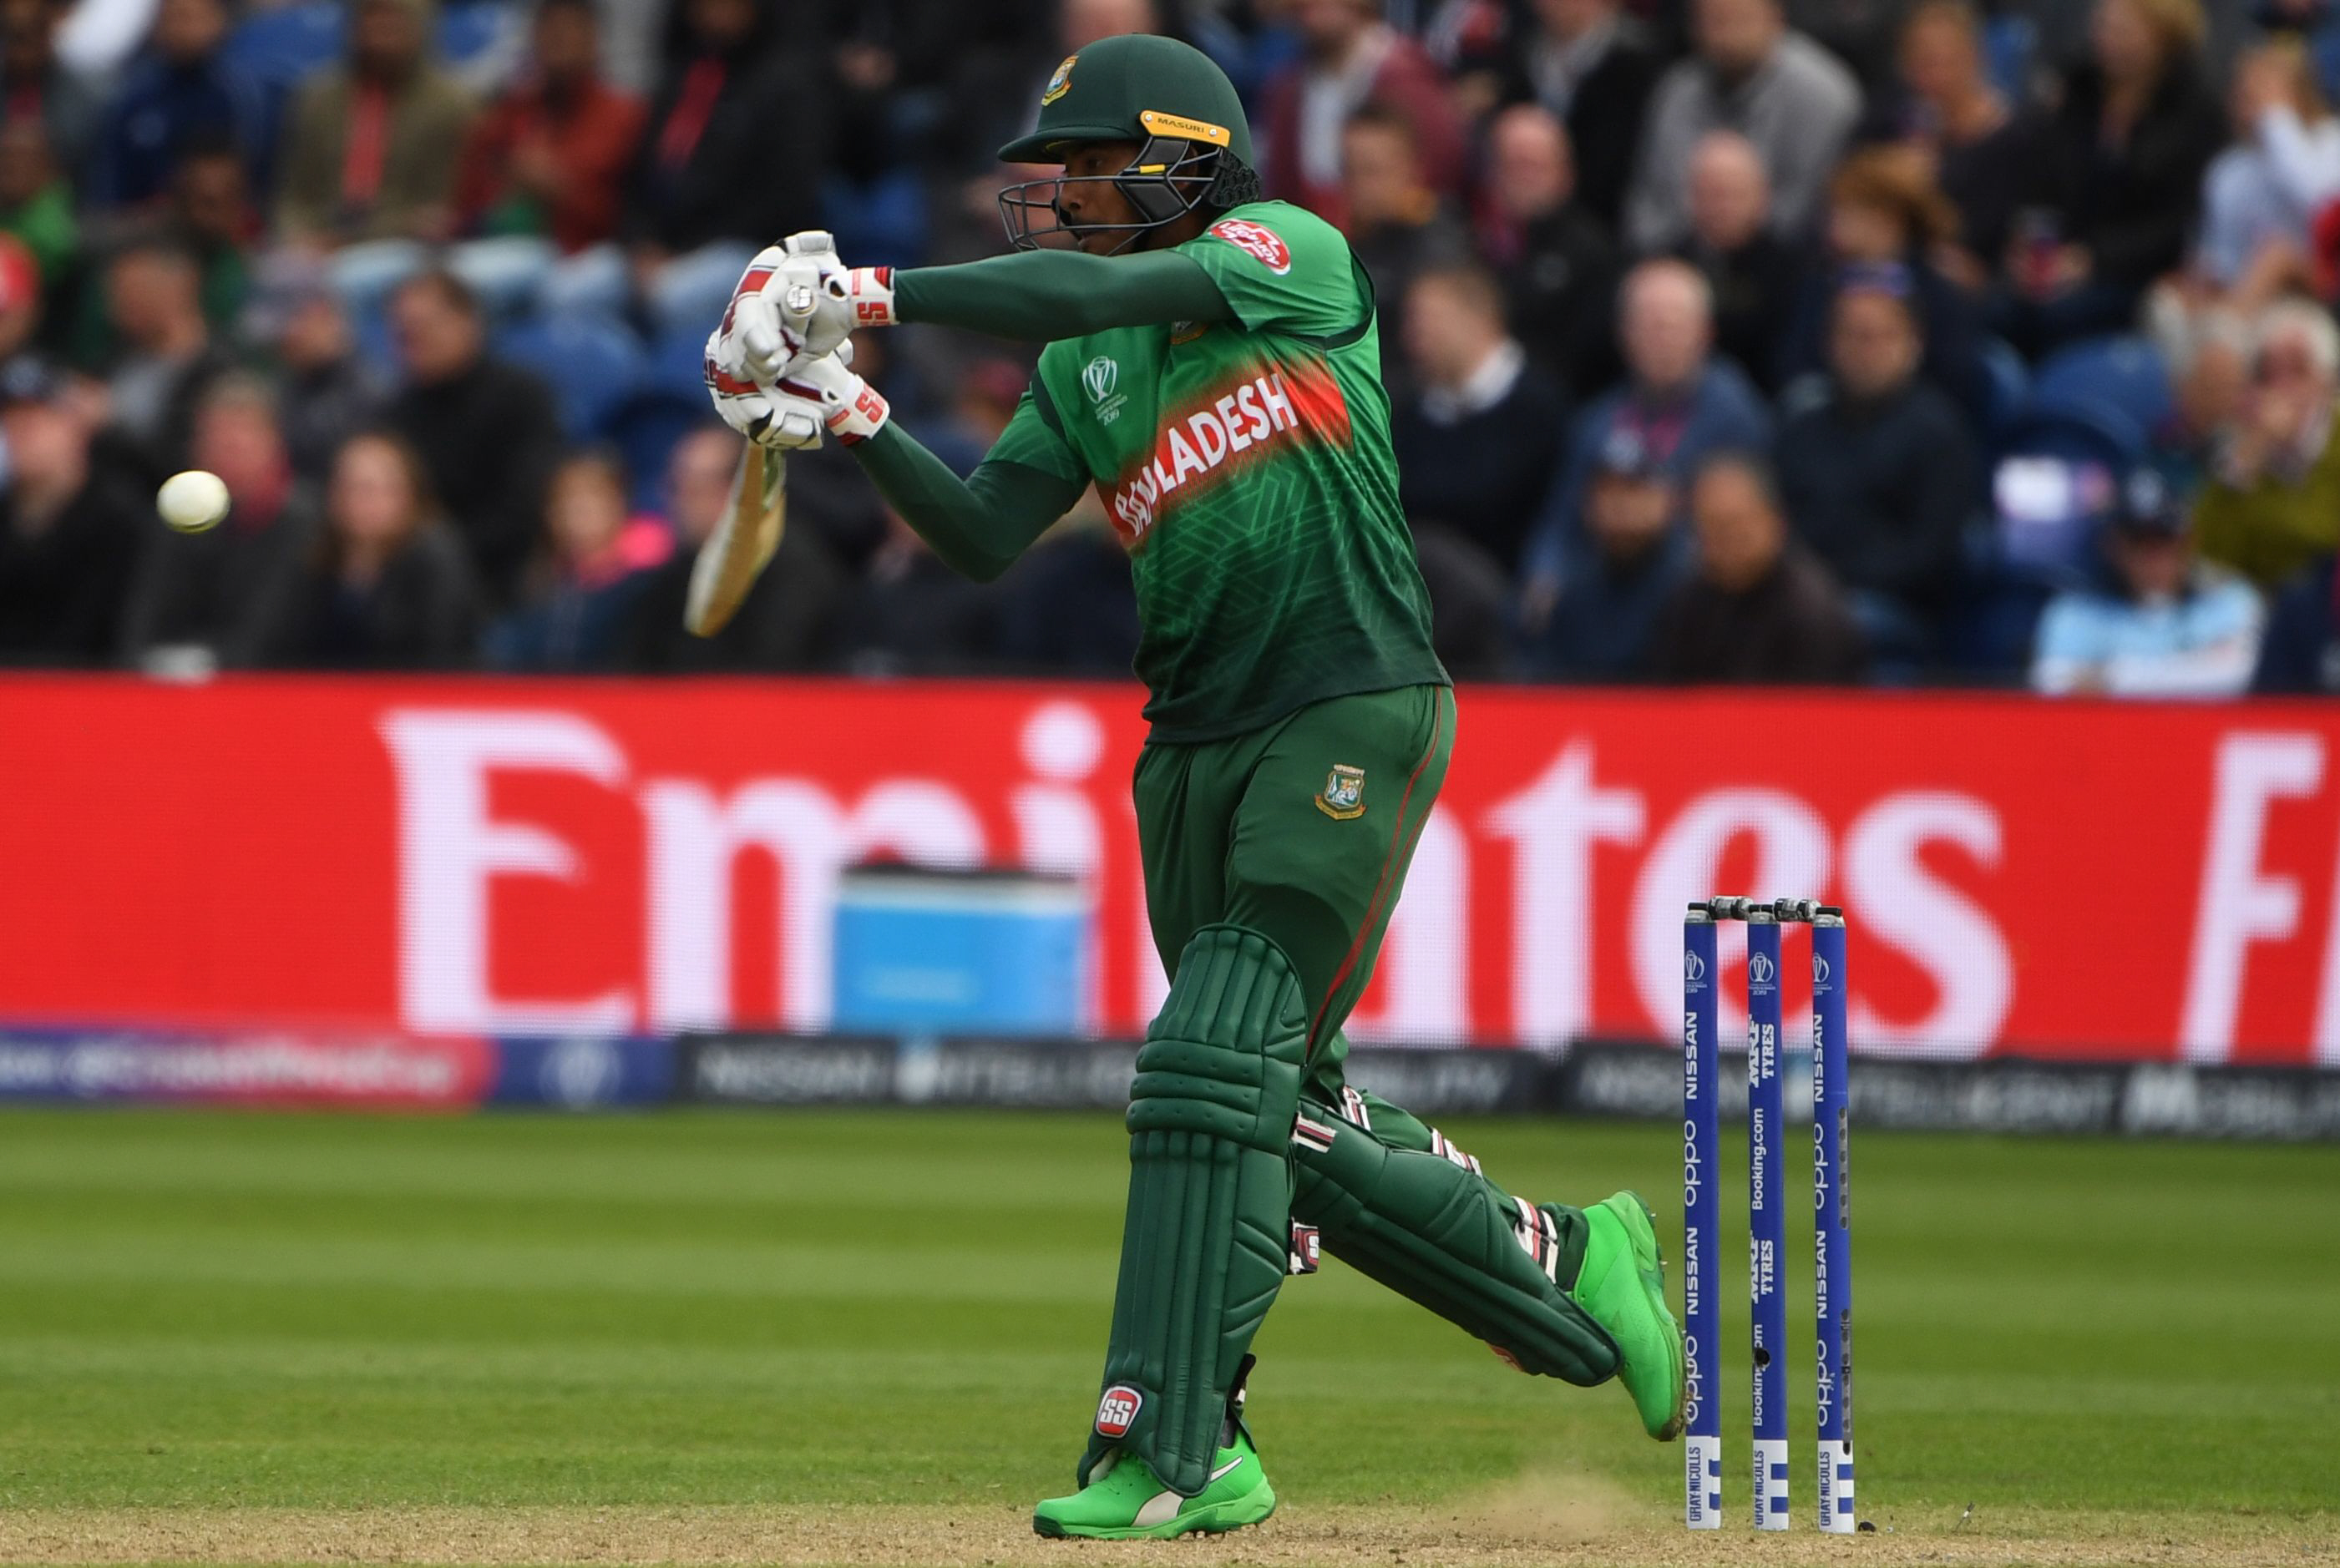 World Cup 2019: England vs Bangladesh